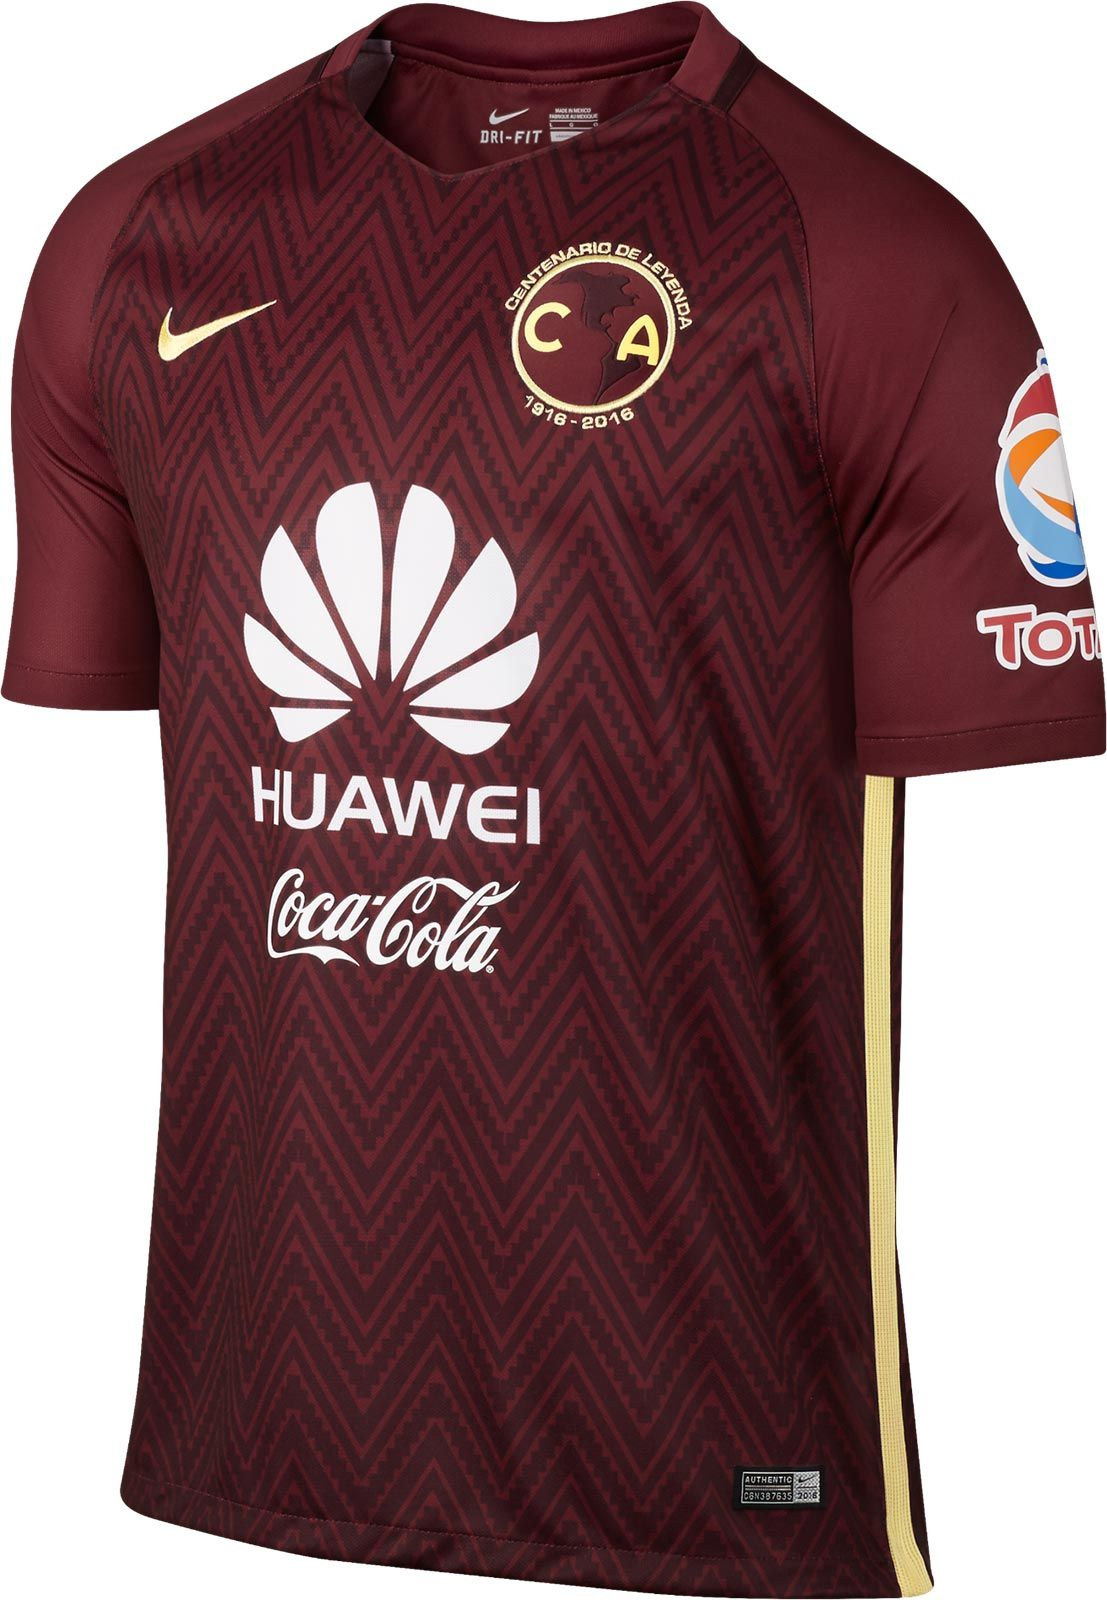 new arrival 20e40 f2f58 The new Club America 2016 centenary kit introduces a ...